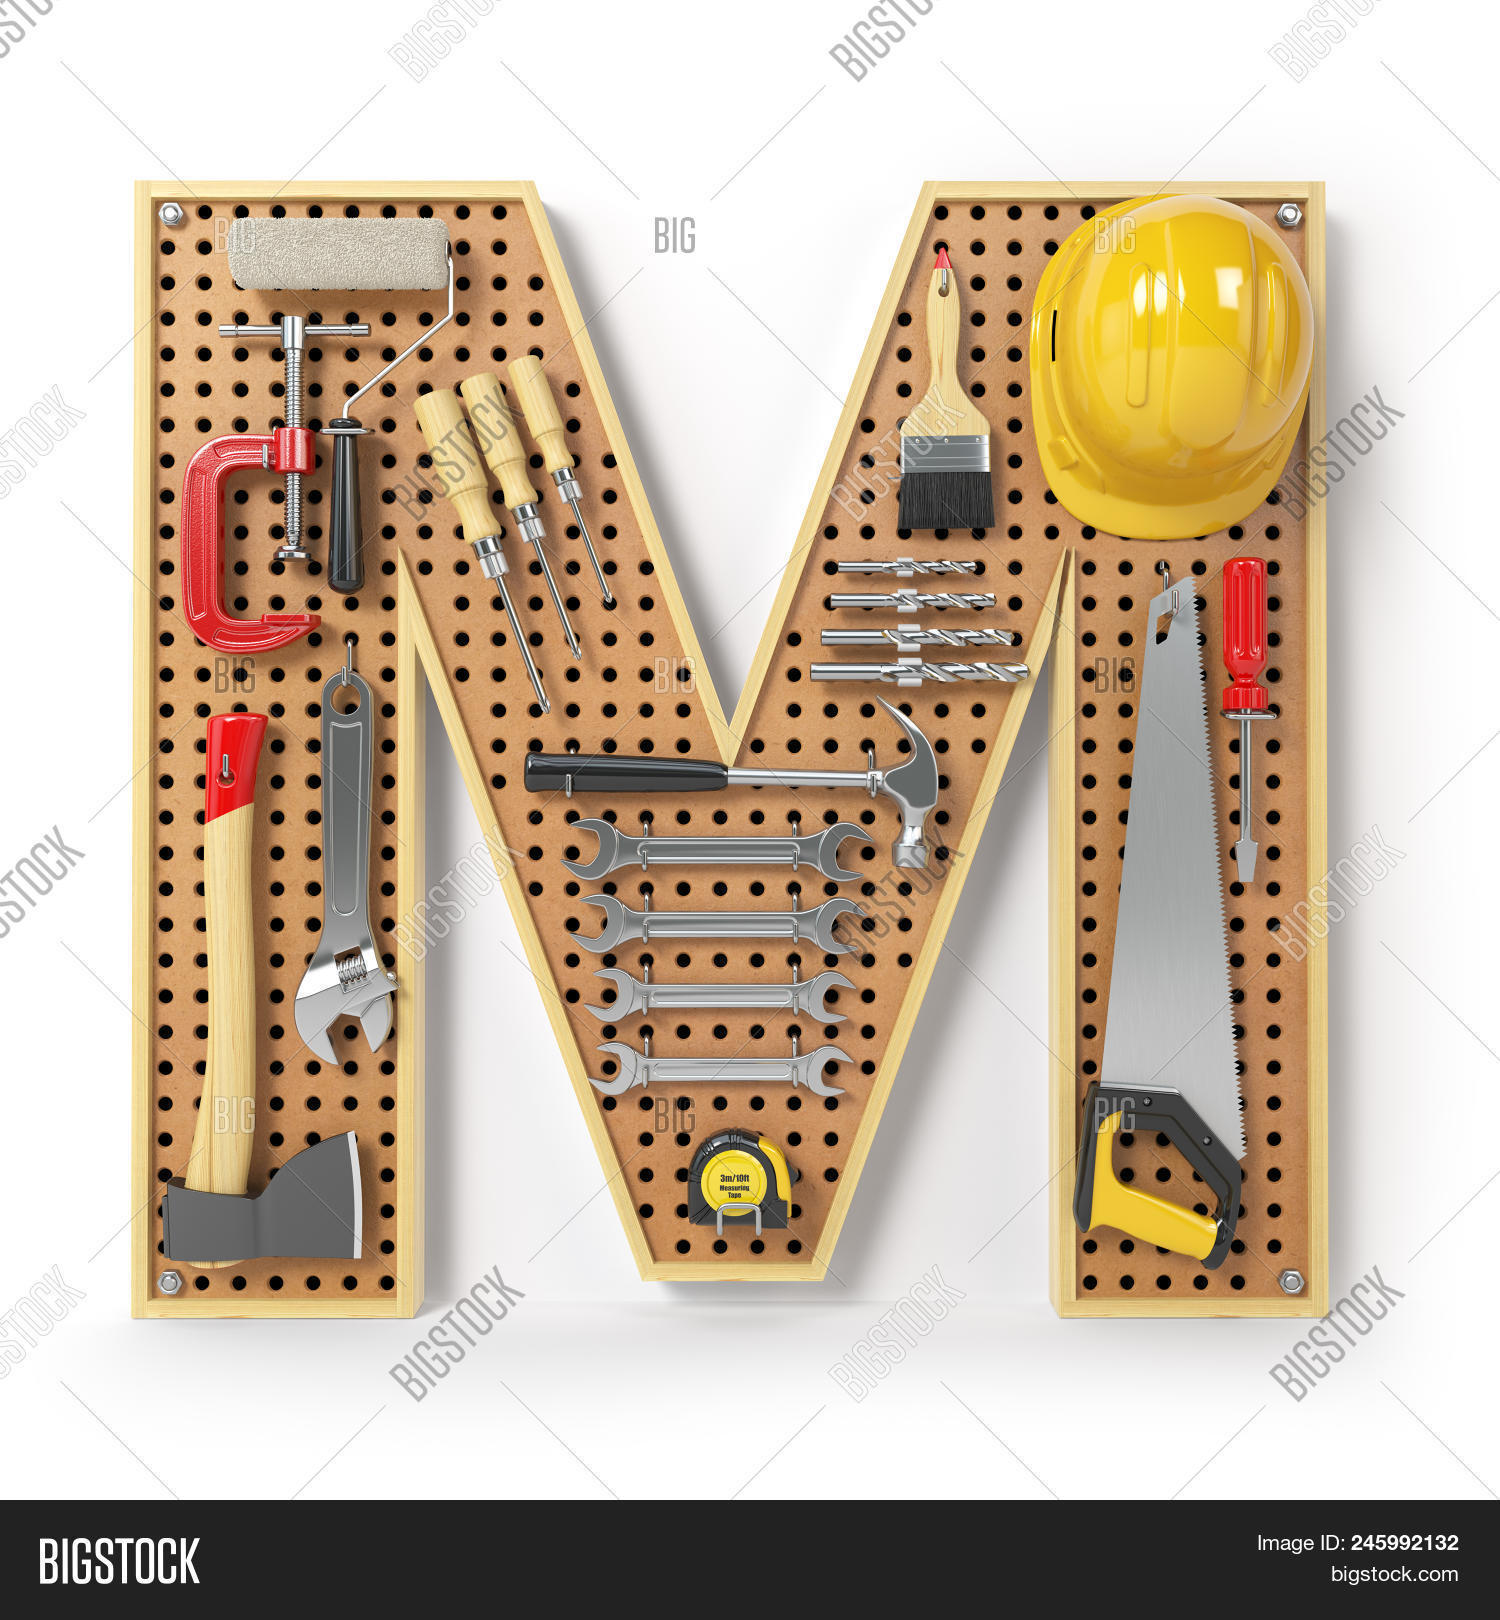 3d,abc,alphabet,background,board,construct,construction,design,diy,equipment,fix,font,garage,hammer,hand,hanging,hardware,hole,illustration,improvement,industrial,industry,isolated,kit,letter,m,maintenance,mechanic,metal,metallic,peg,pegboard,renovation,repair,screwdriver,service,set,shop,sign,spanner,symbol,text,texture,tool,tools,wall,white,work,workshop,wrench